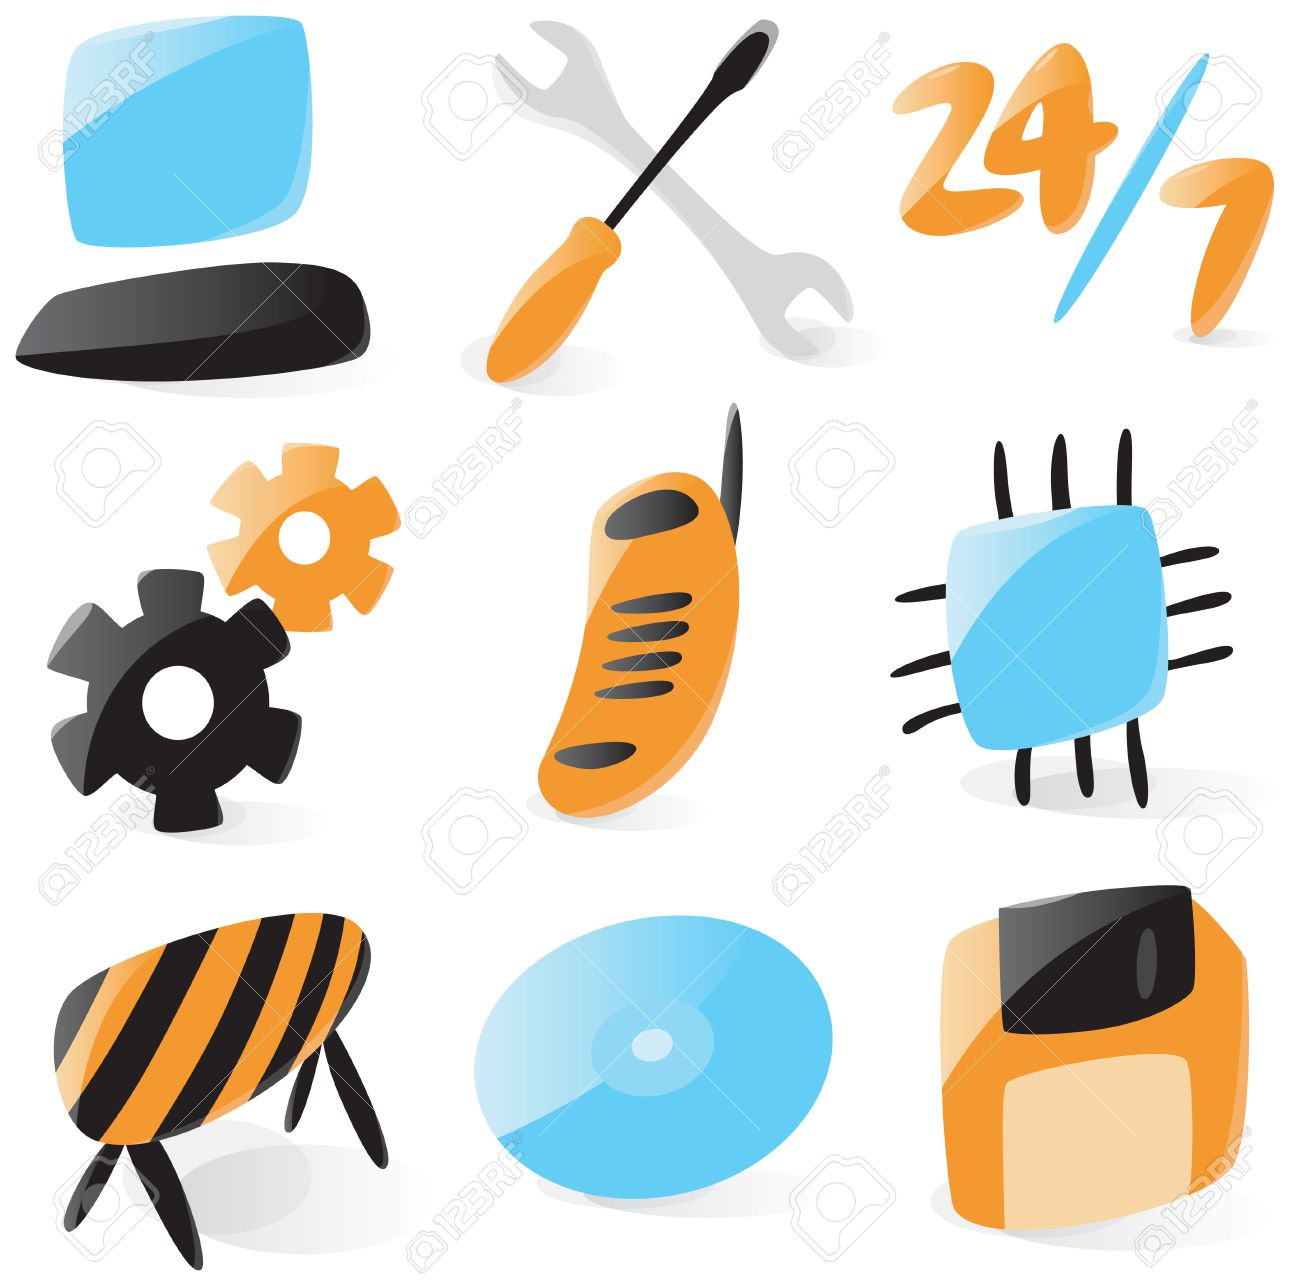 Set of smooth and glossy icons for computer services. Vector illustration. Figures are not part of any existing font, all the figures were drawn by hand. Stock Vector - 5254986